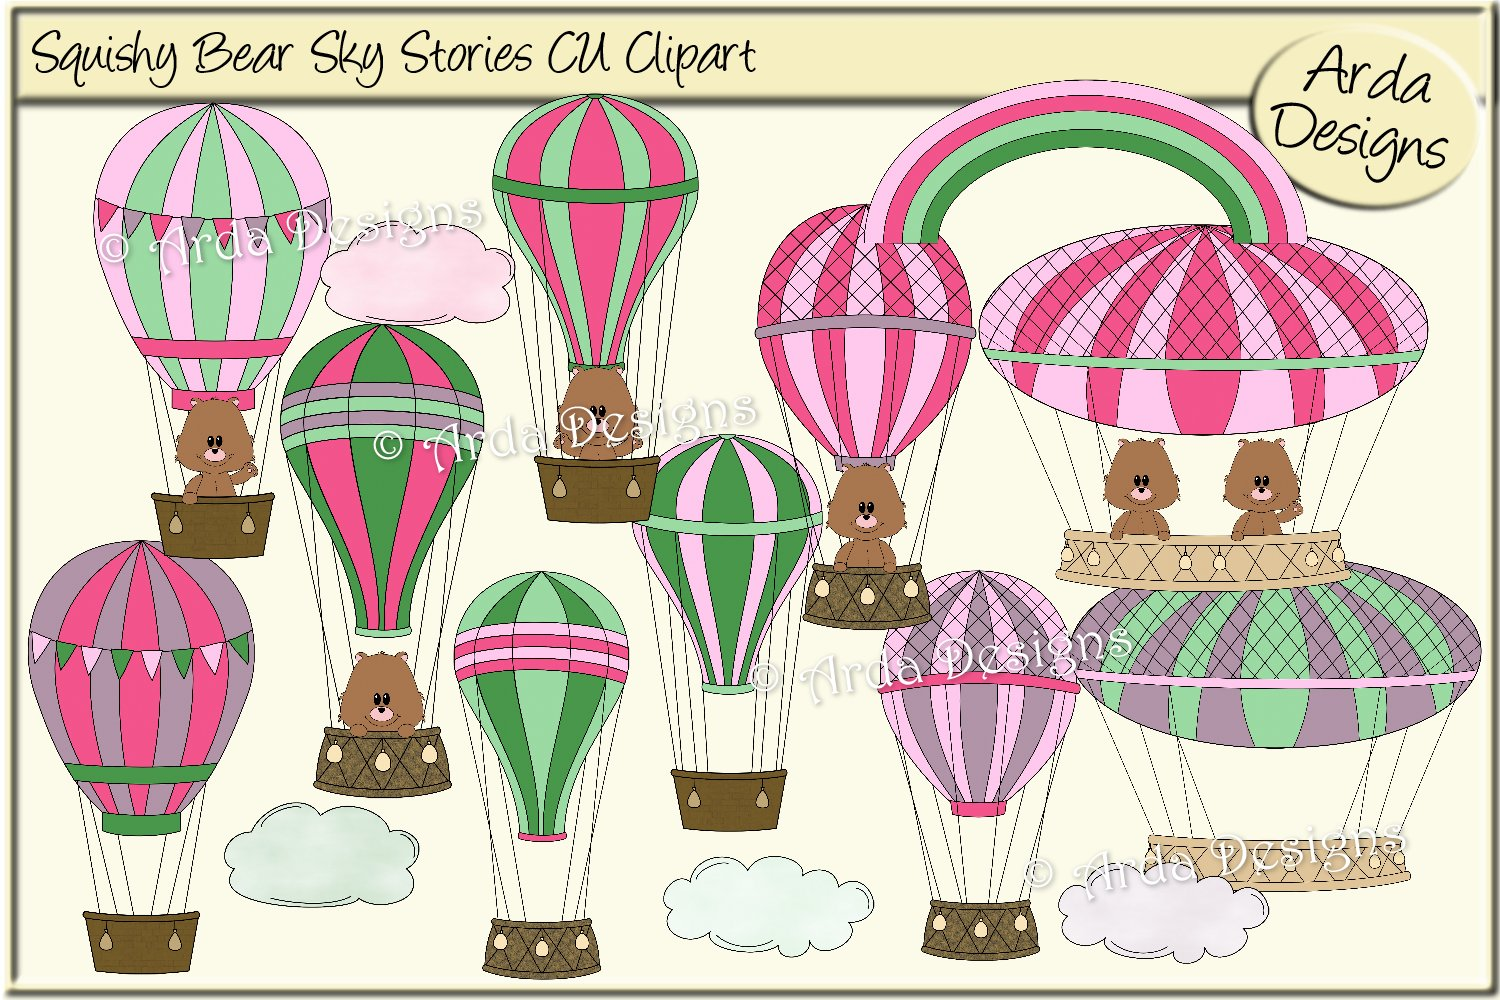 Squishy Bear Sky Stories CU Clipart